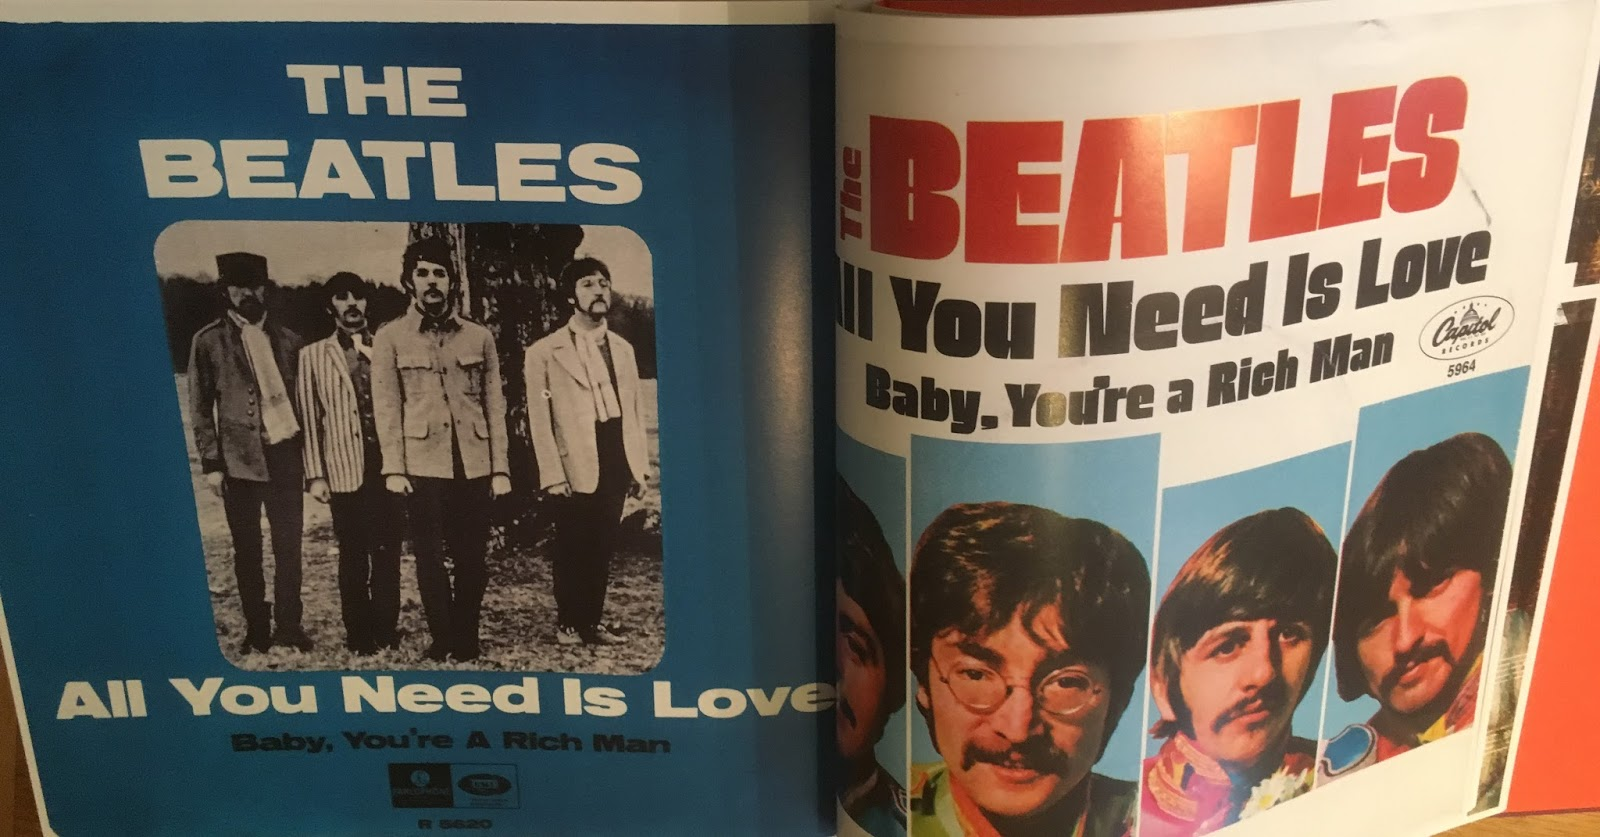 michelle thefest com   The Fest for Beatles Fans Song in My Life Beatles Lyrics